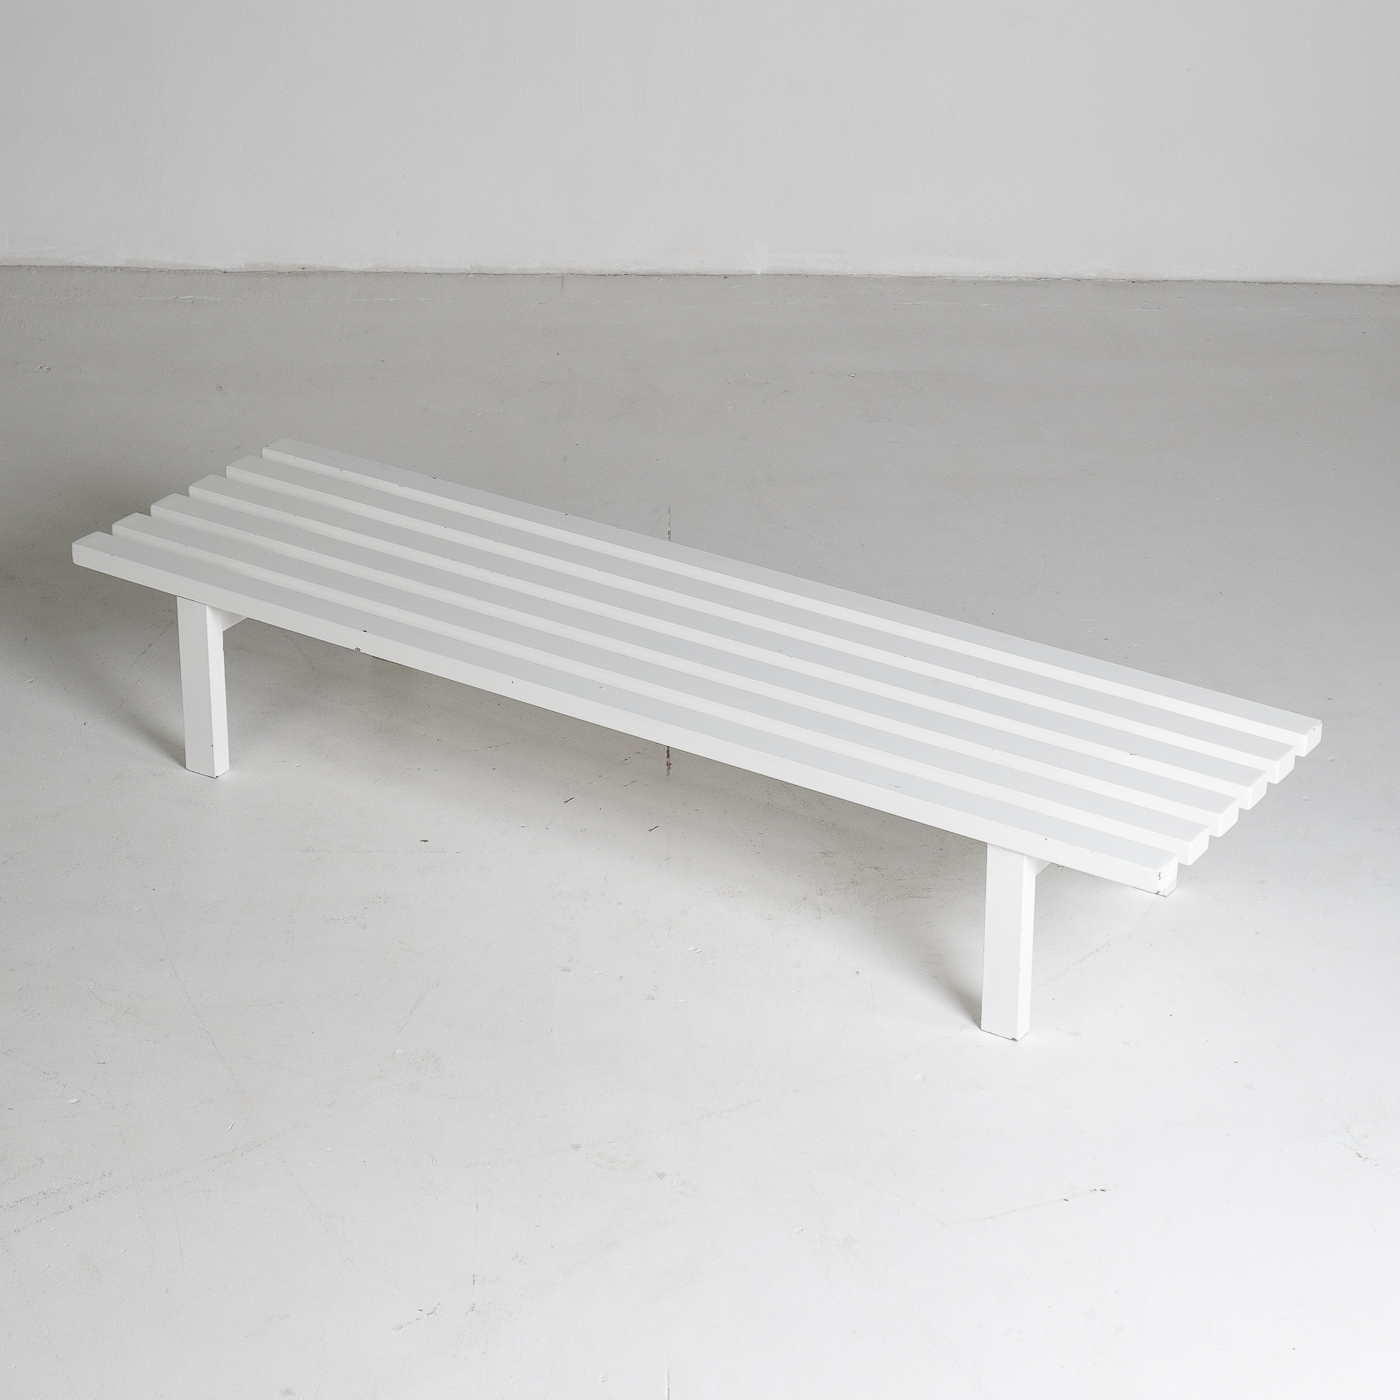 Bench In White Steel In The Style Of Metaform, 1970s, The Netherlands 5